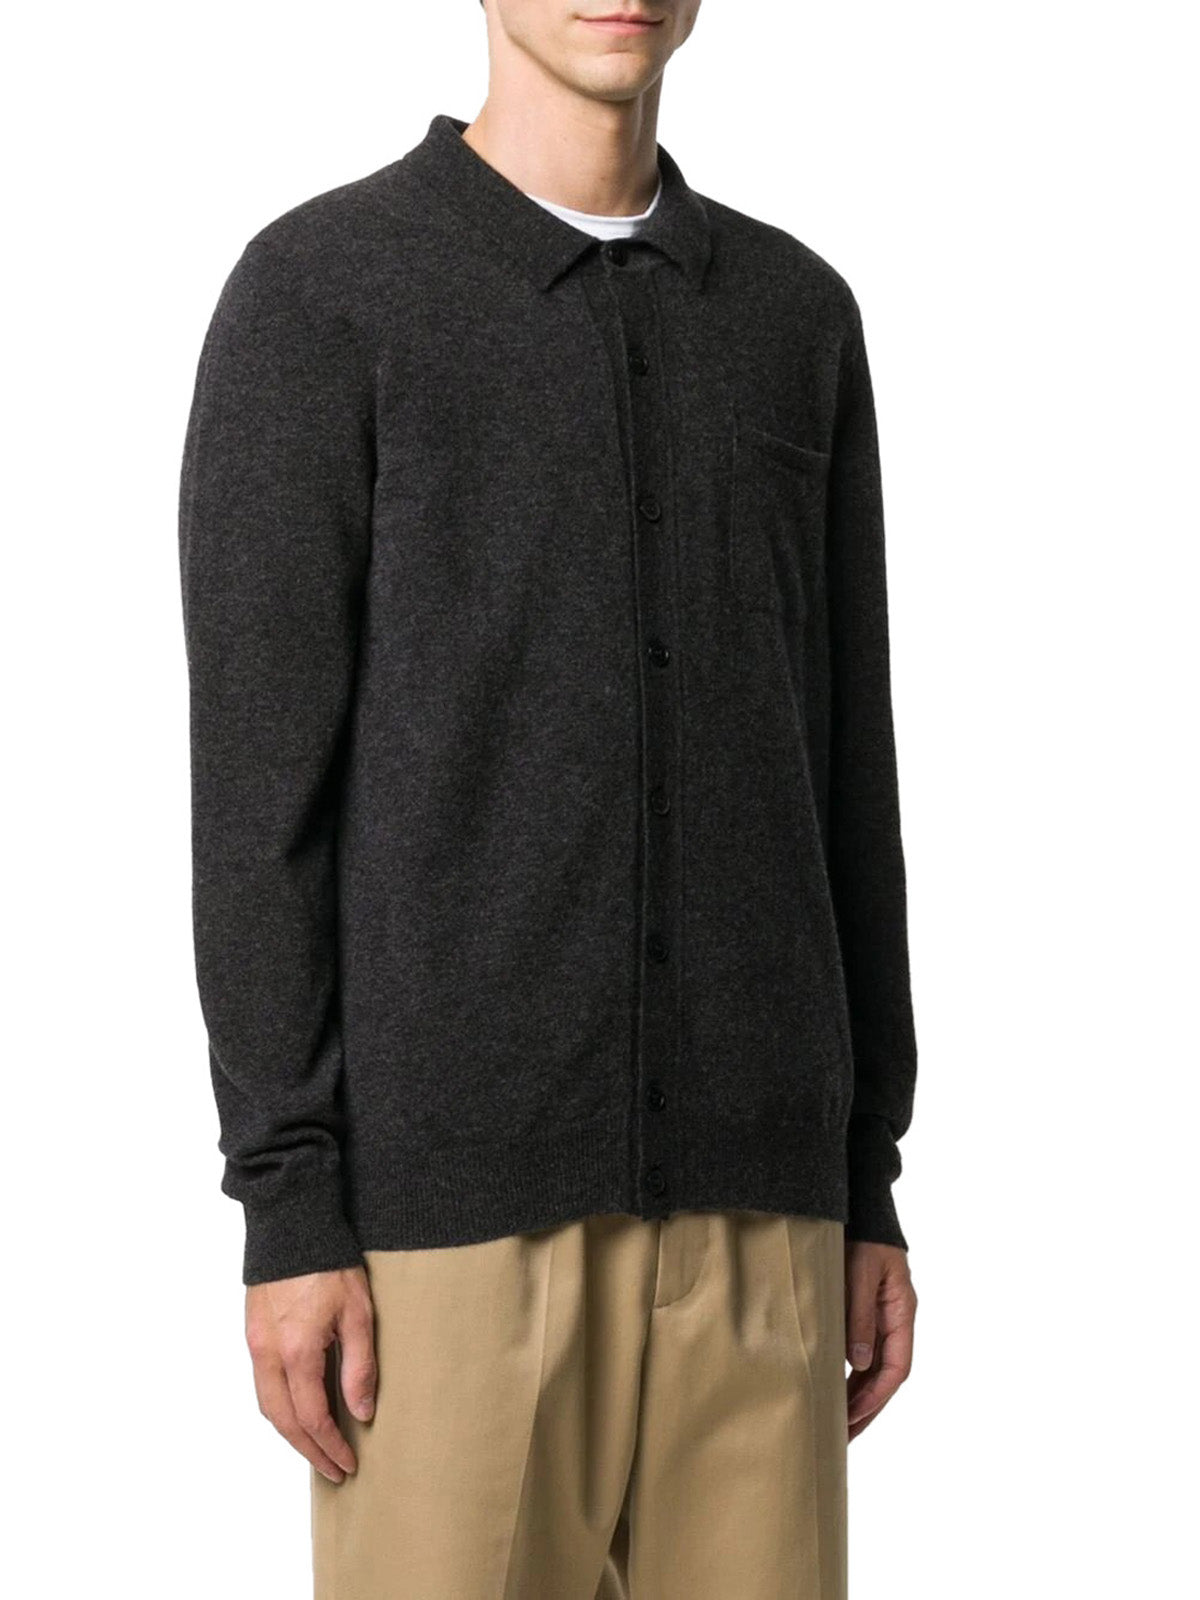 fine-knit fitted cardigan